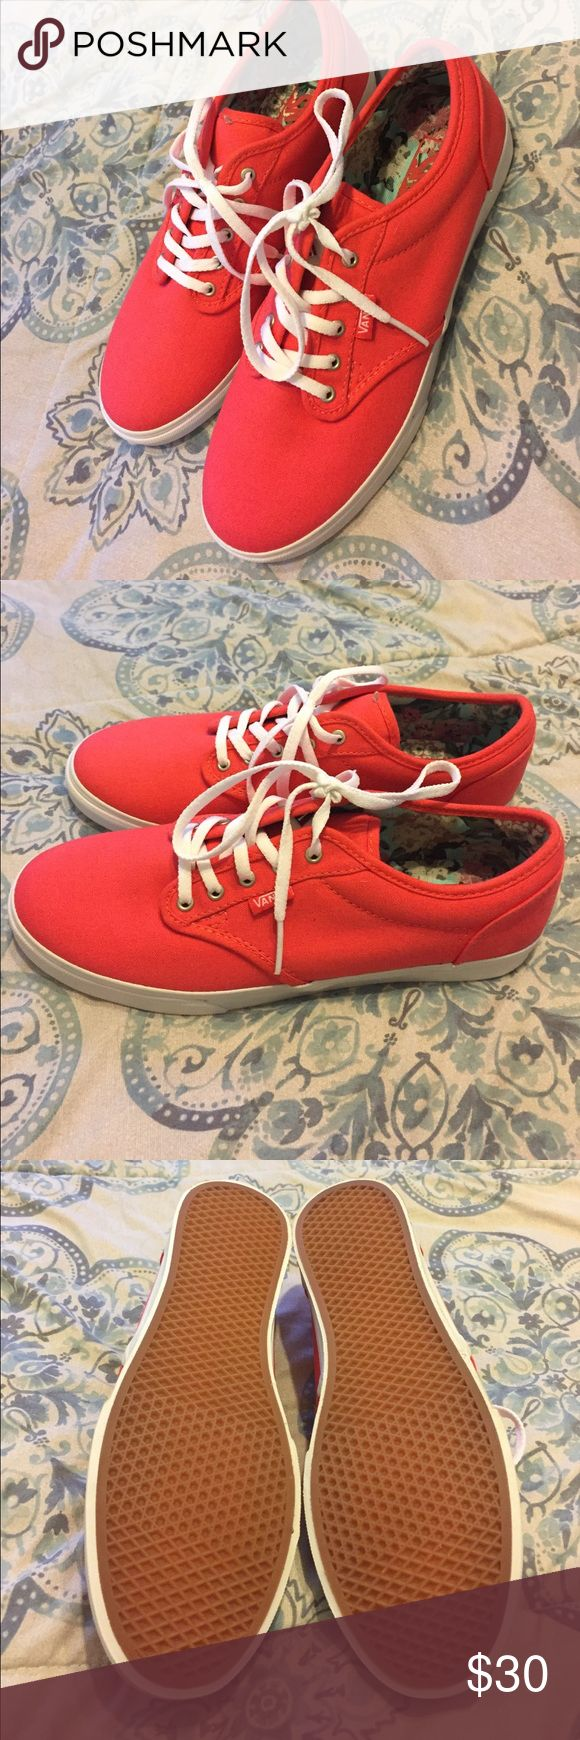 🆕 Coral Vans ‼️ Brand new and never worn cute Vans sneakers. Has a floral decor inside. Will be cute to wear with shorts or fun dress. Great for this summer! Please no trades! Vans Shoes Sneakers